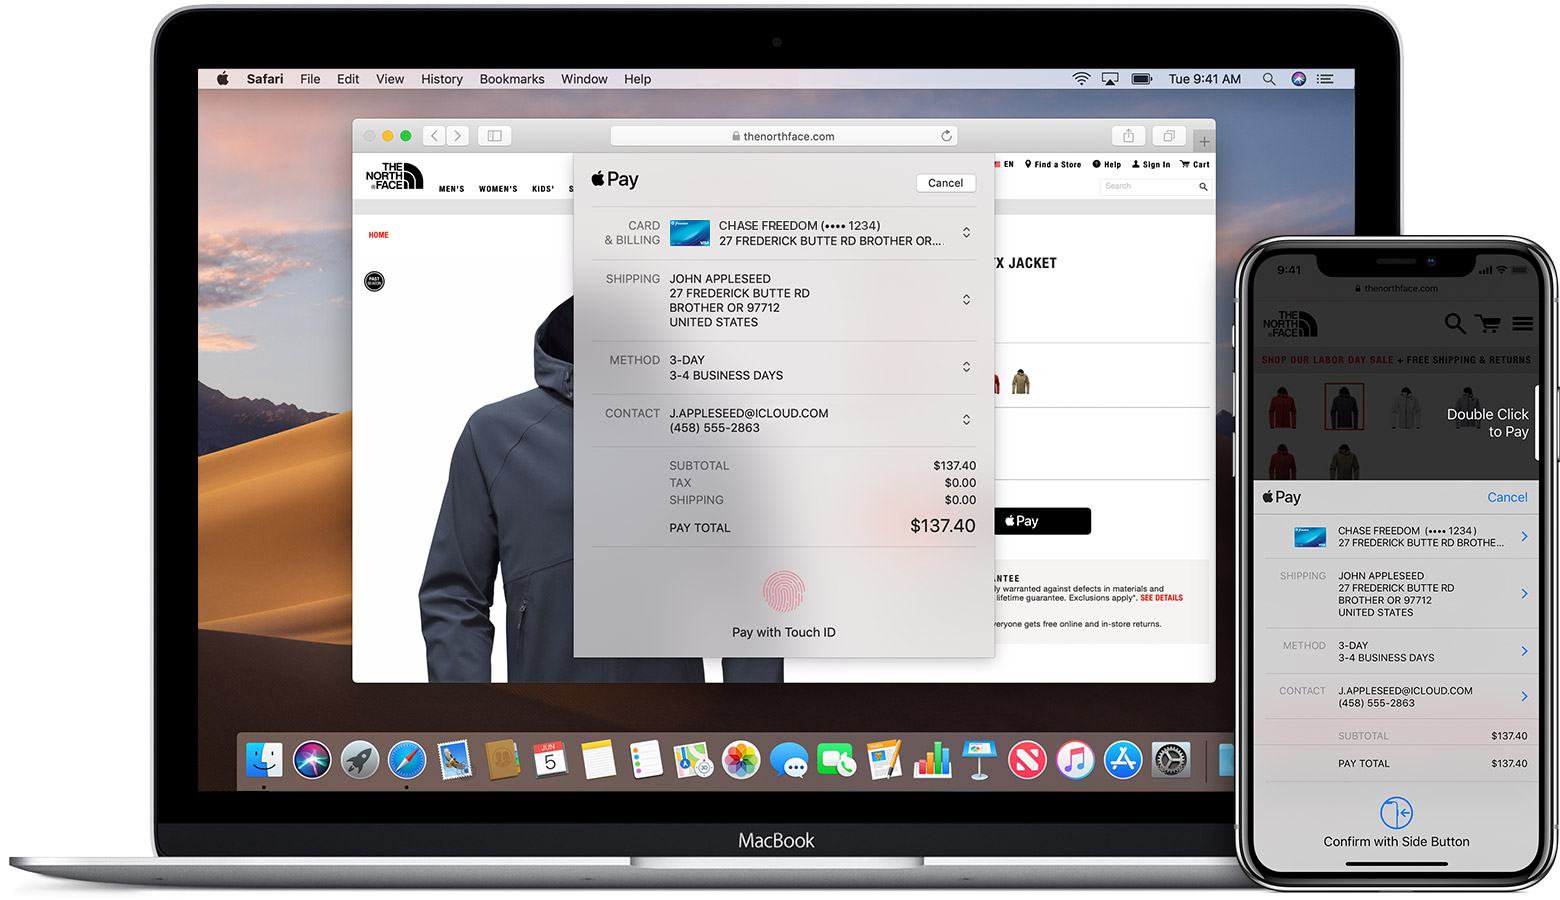 Apple Pay is a digital wallet and payment gateway